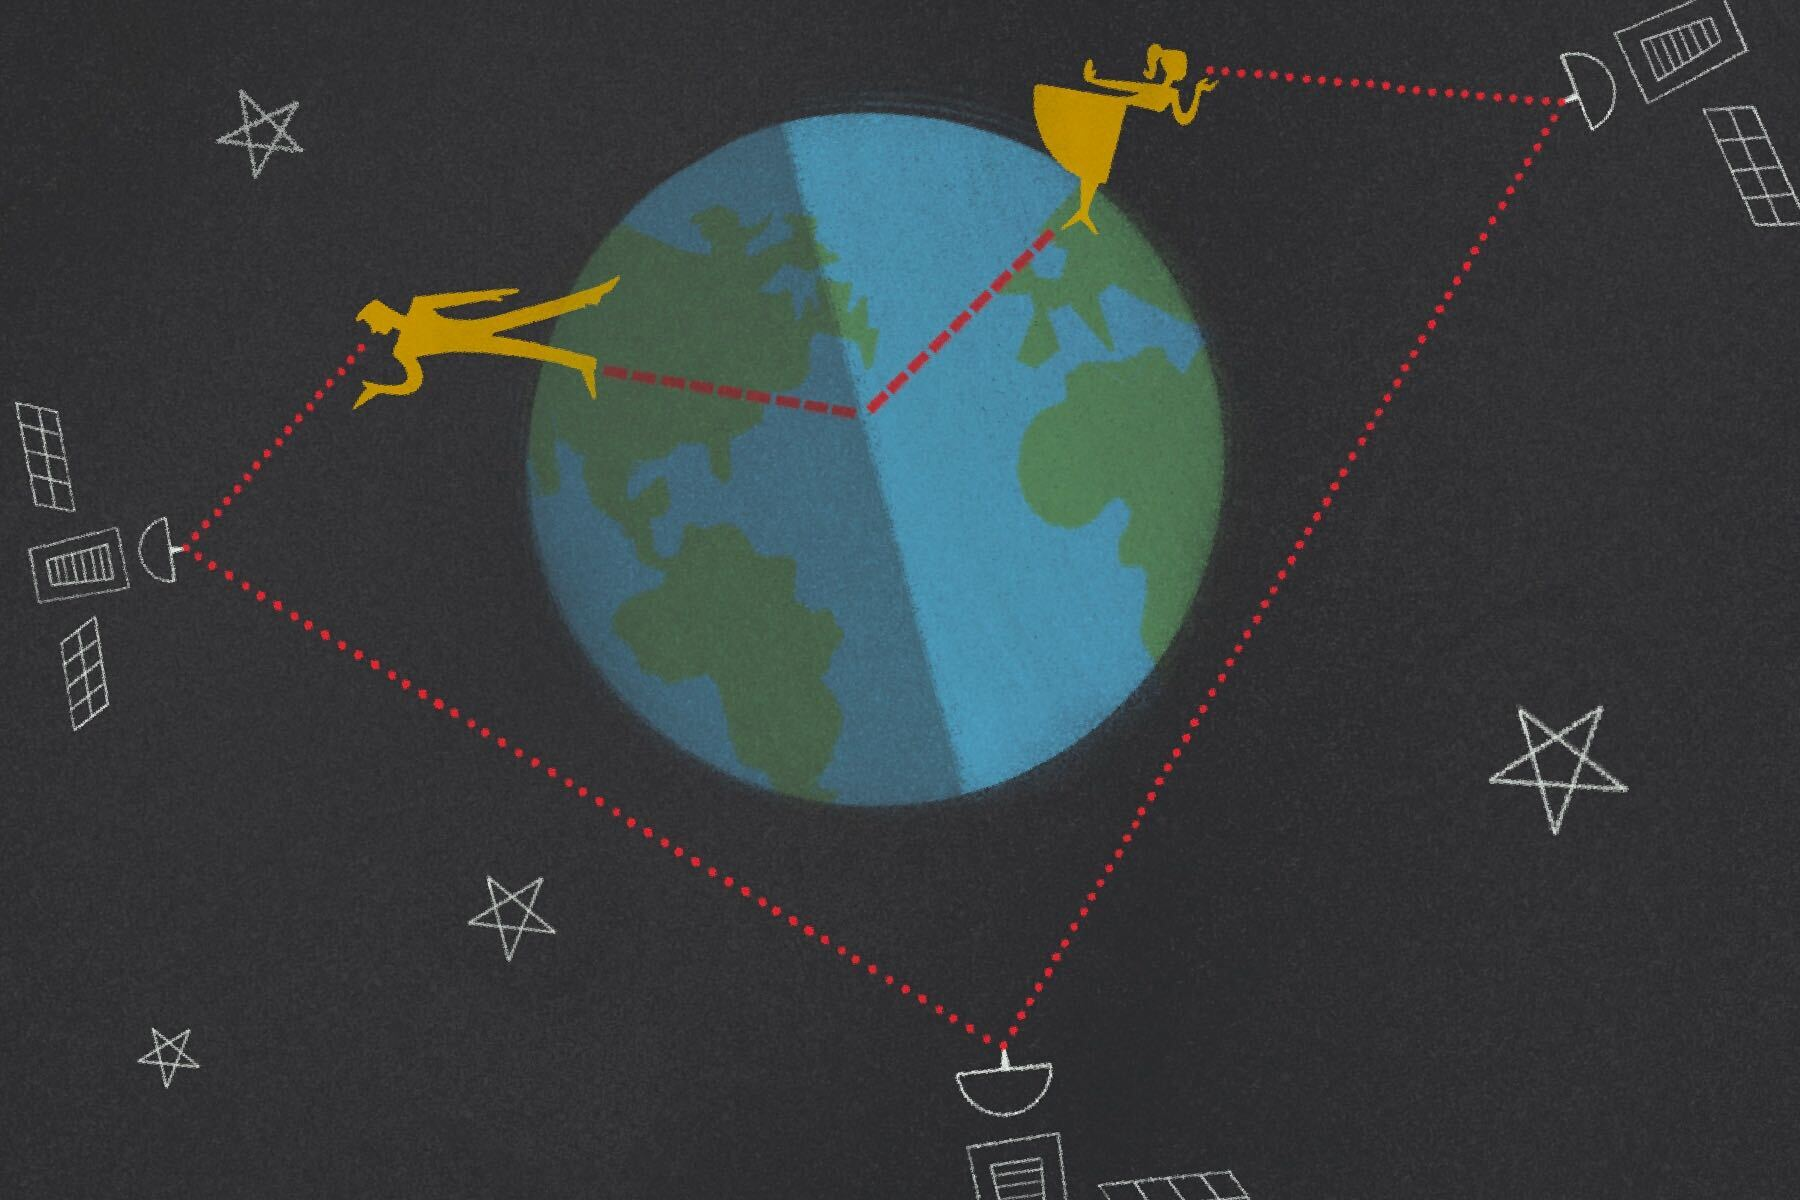 In an article about long-distance relationships, an illustration by Francesca Mahaney of two people on a globe, triangulated by a satellite in space